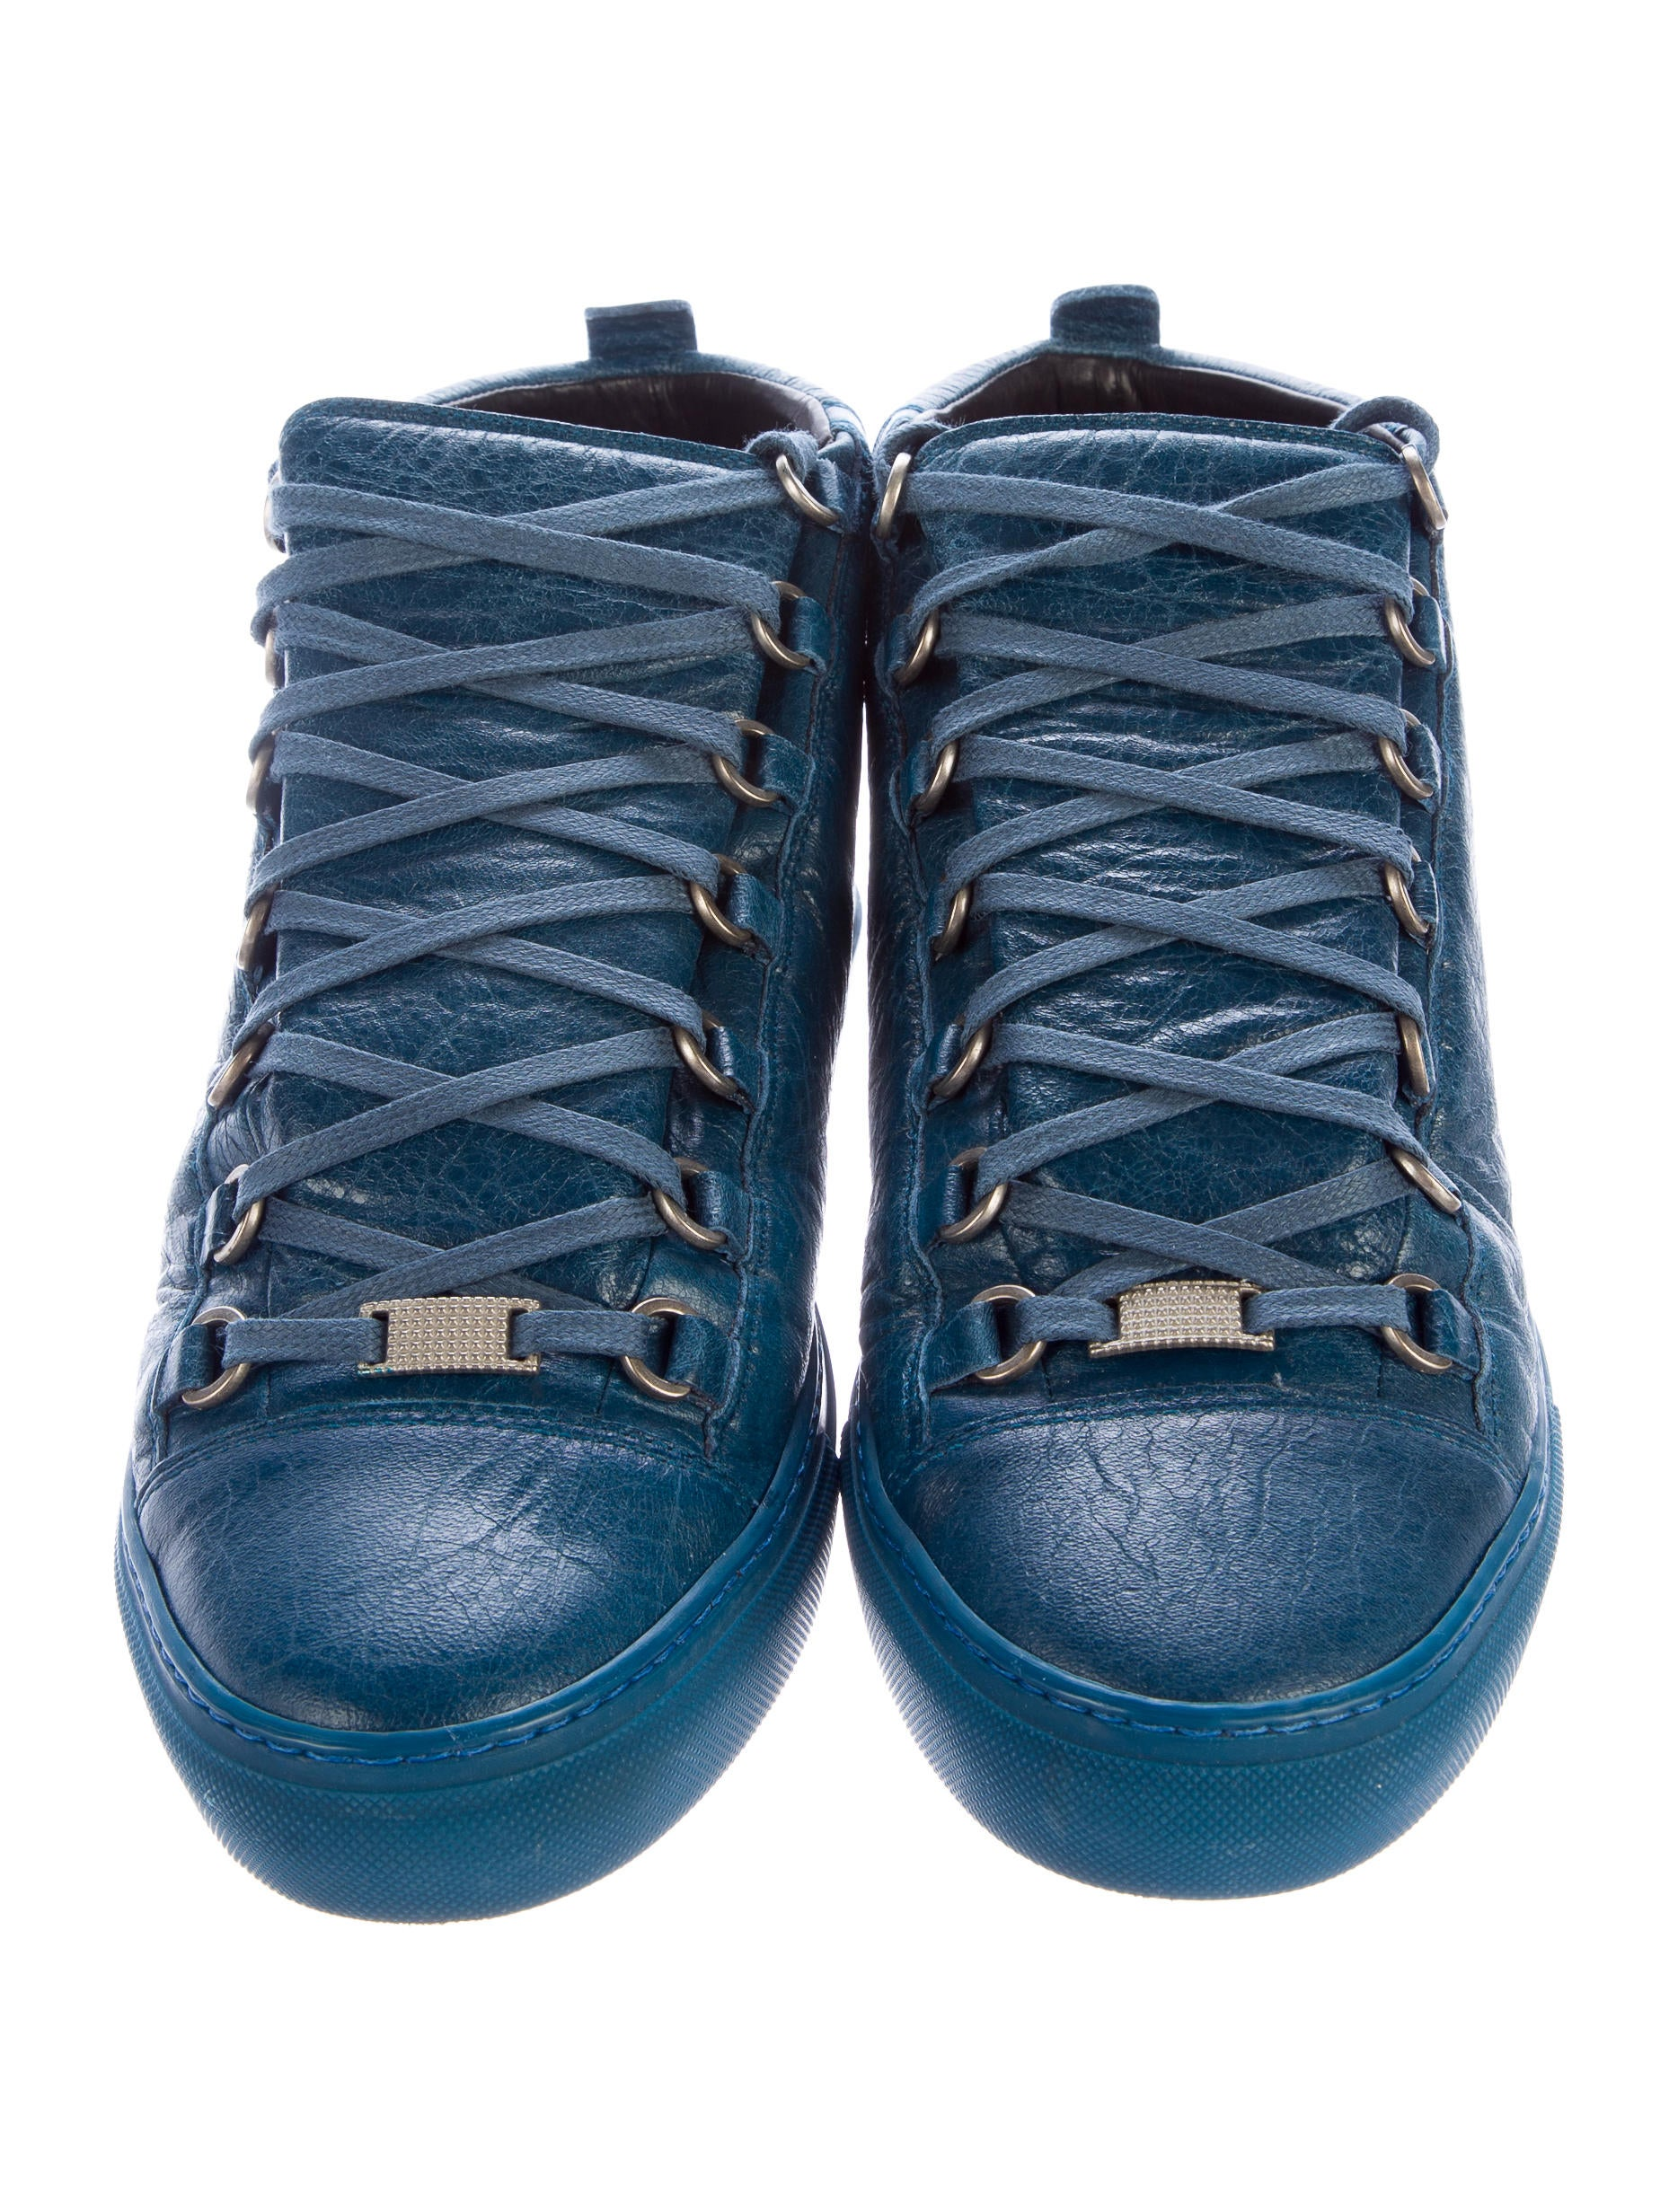 1001fdb2f65af Balenciaga Arena Leather Sneakers - Shoes - BAL47617